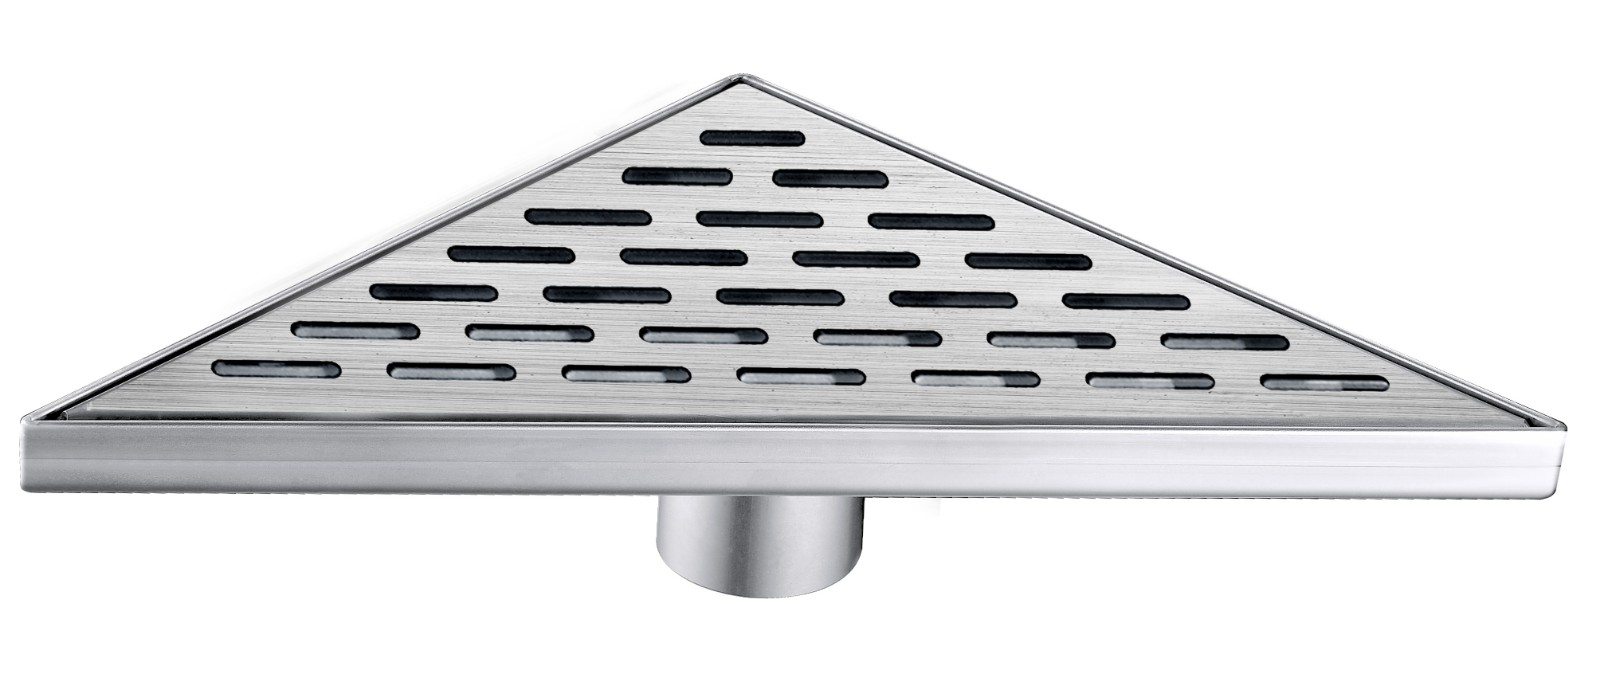 foldable bathroom drain manufacturer for bathroom-1